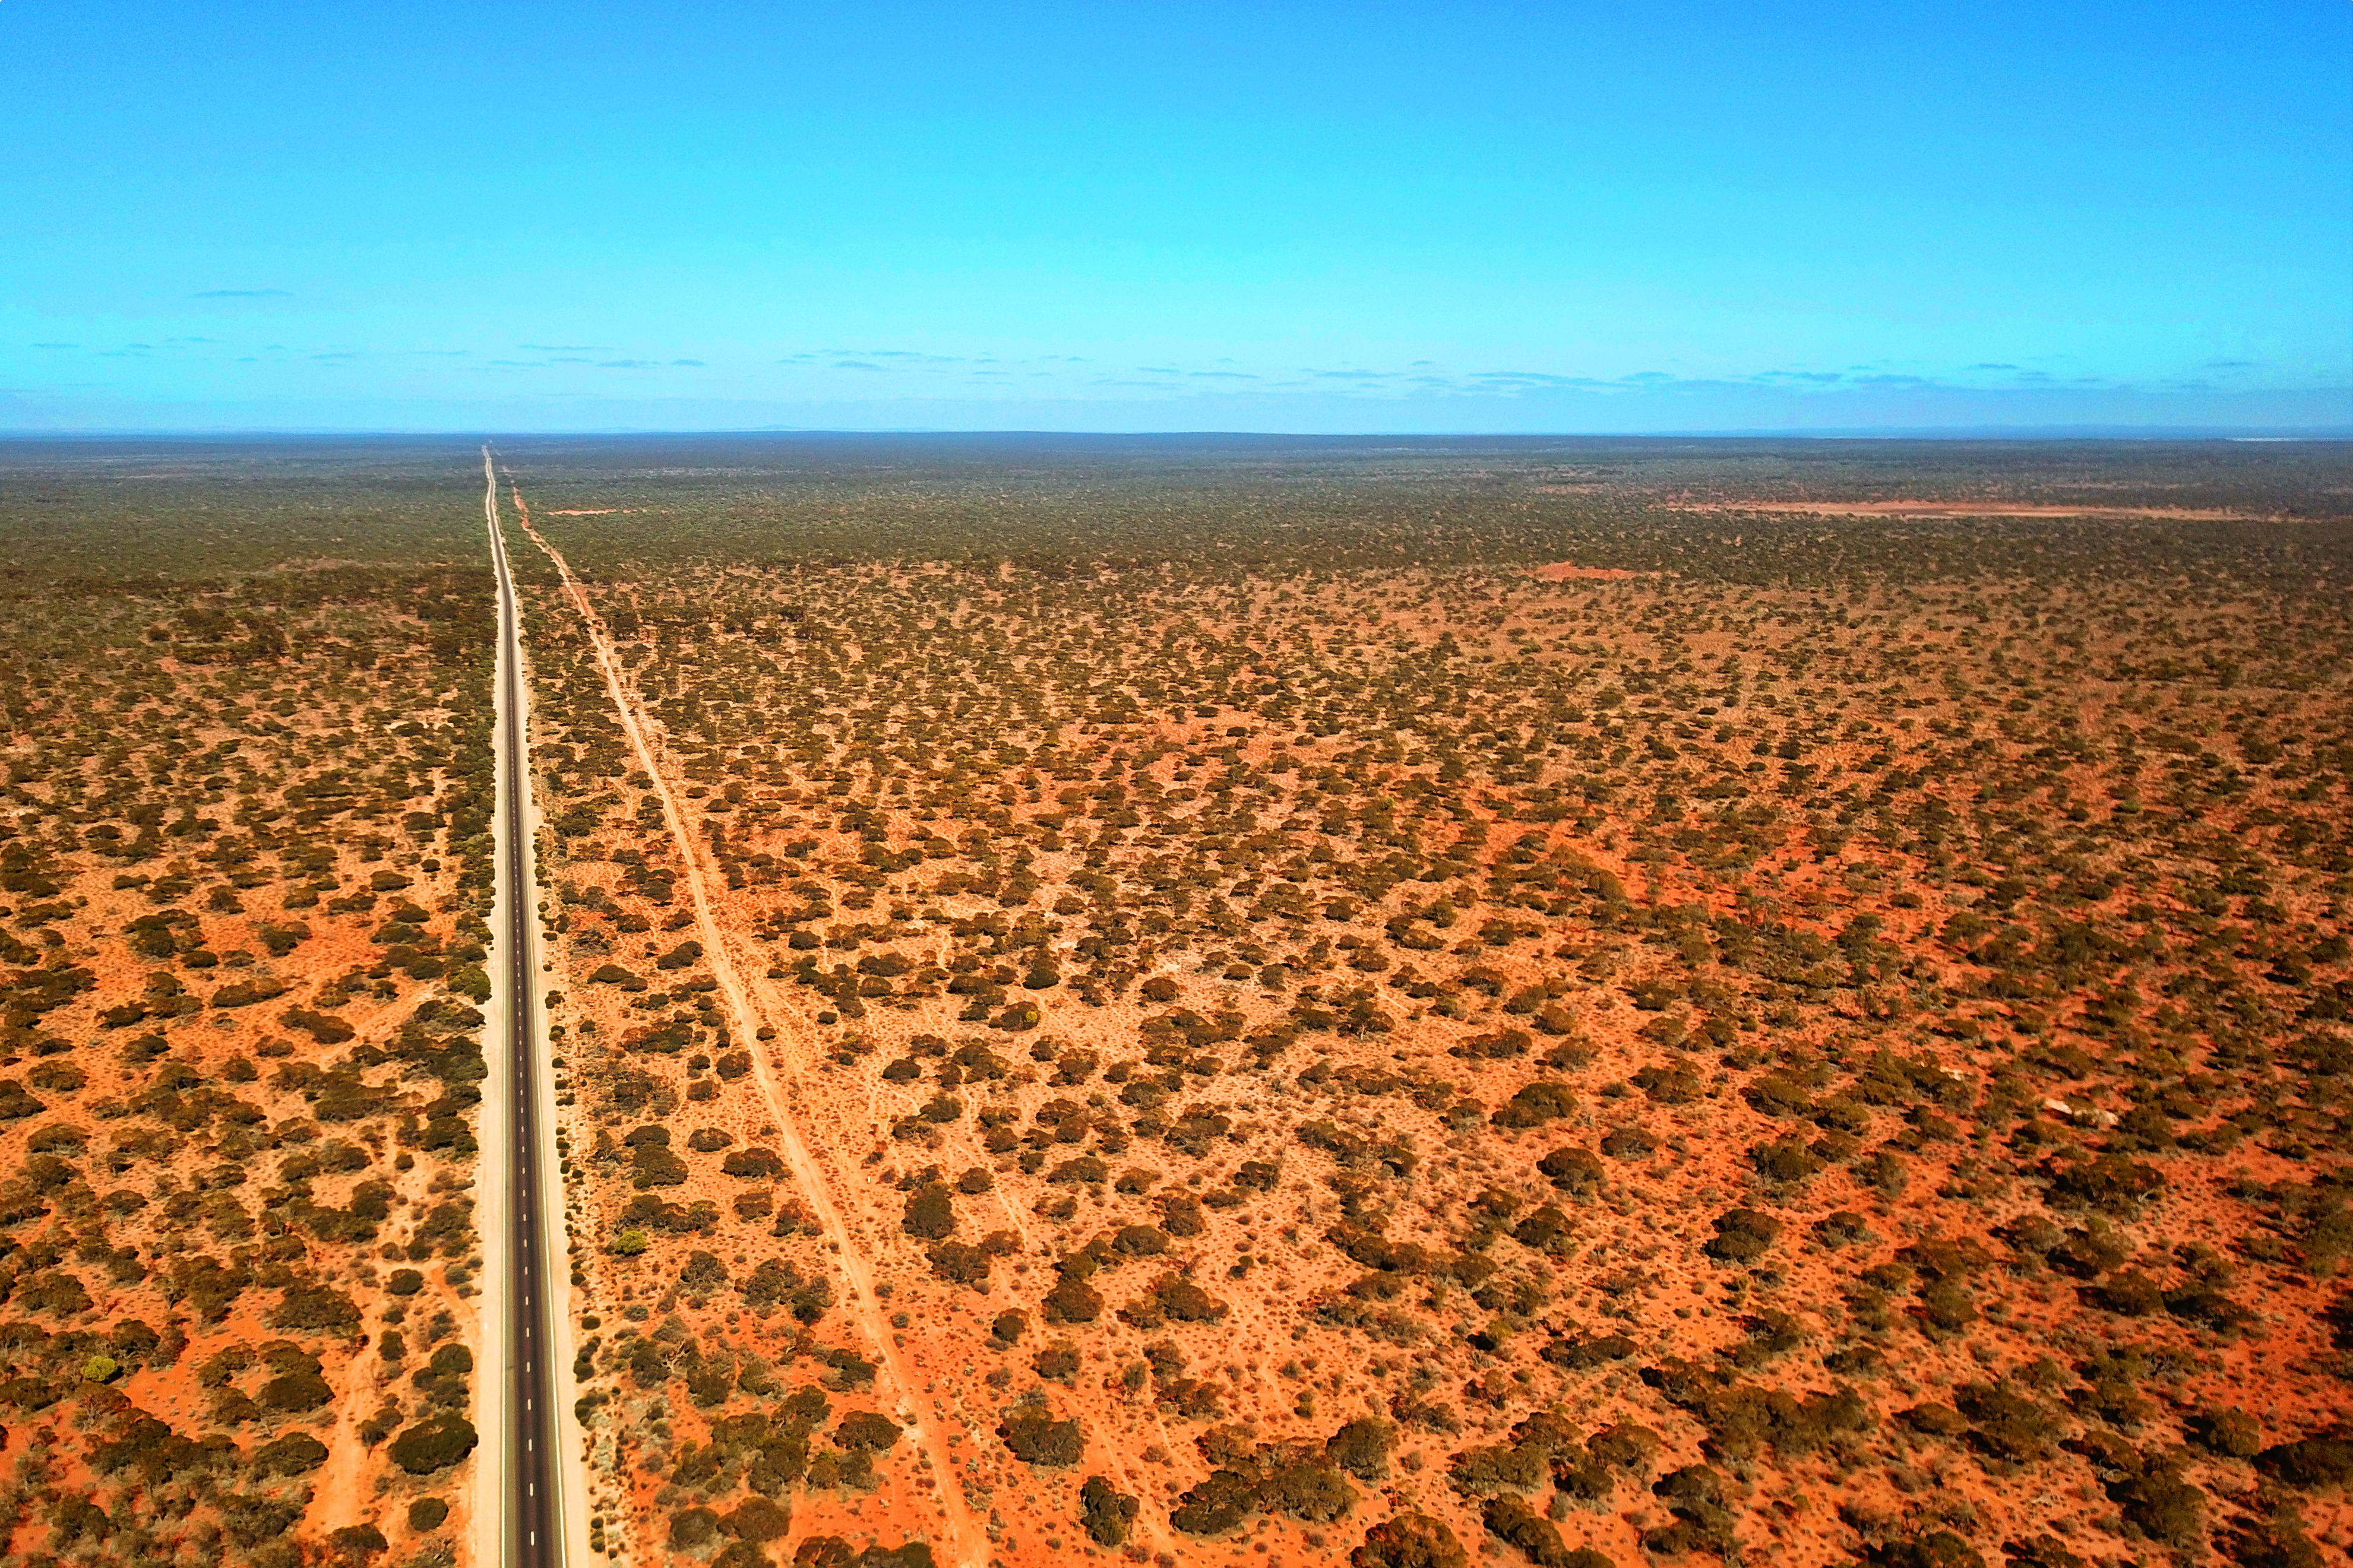 Australian red outback from the sky